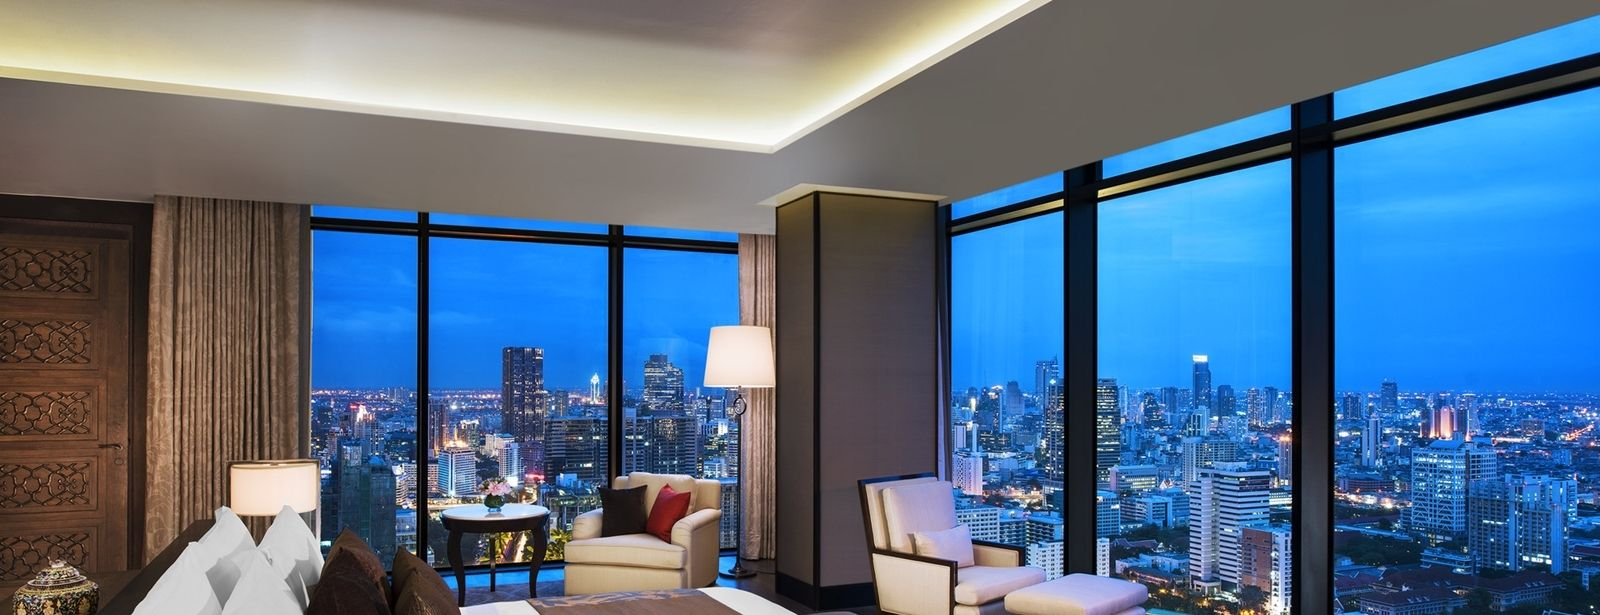 The St. Regis Bangkok Penthouse Video